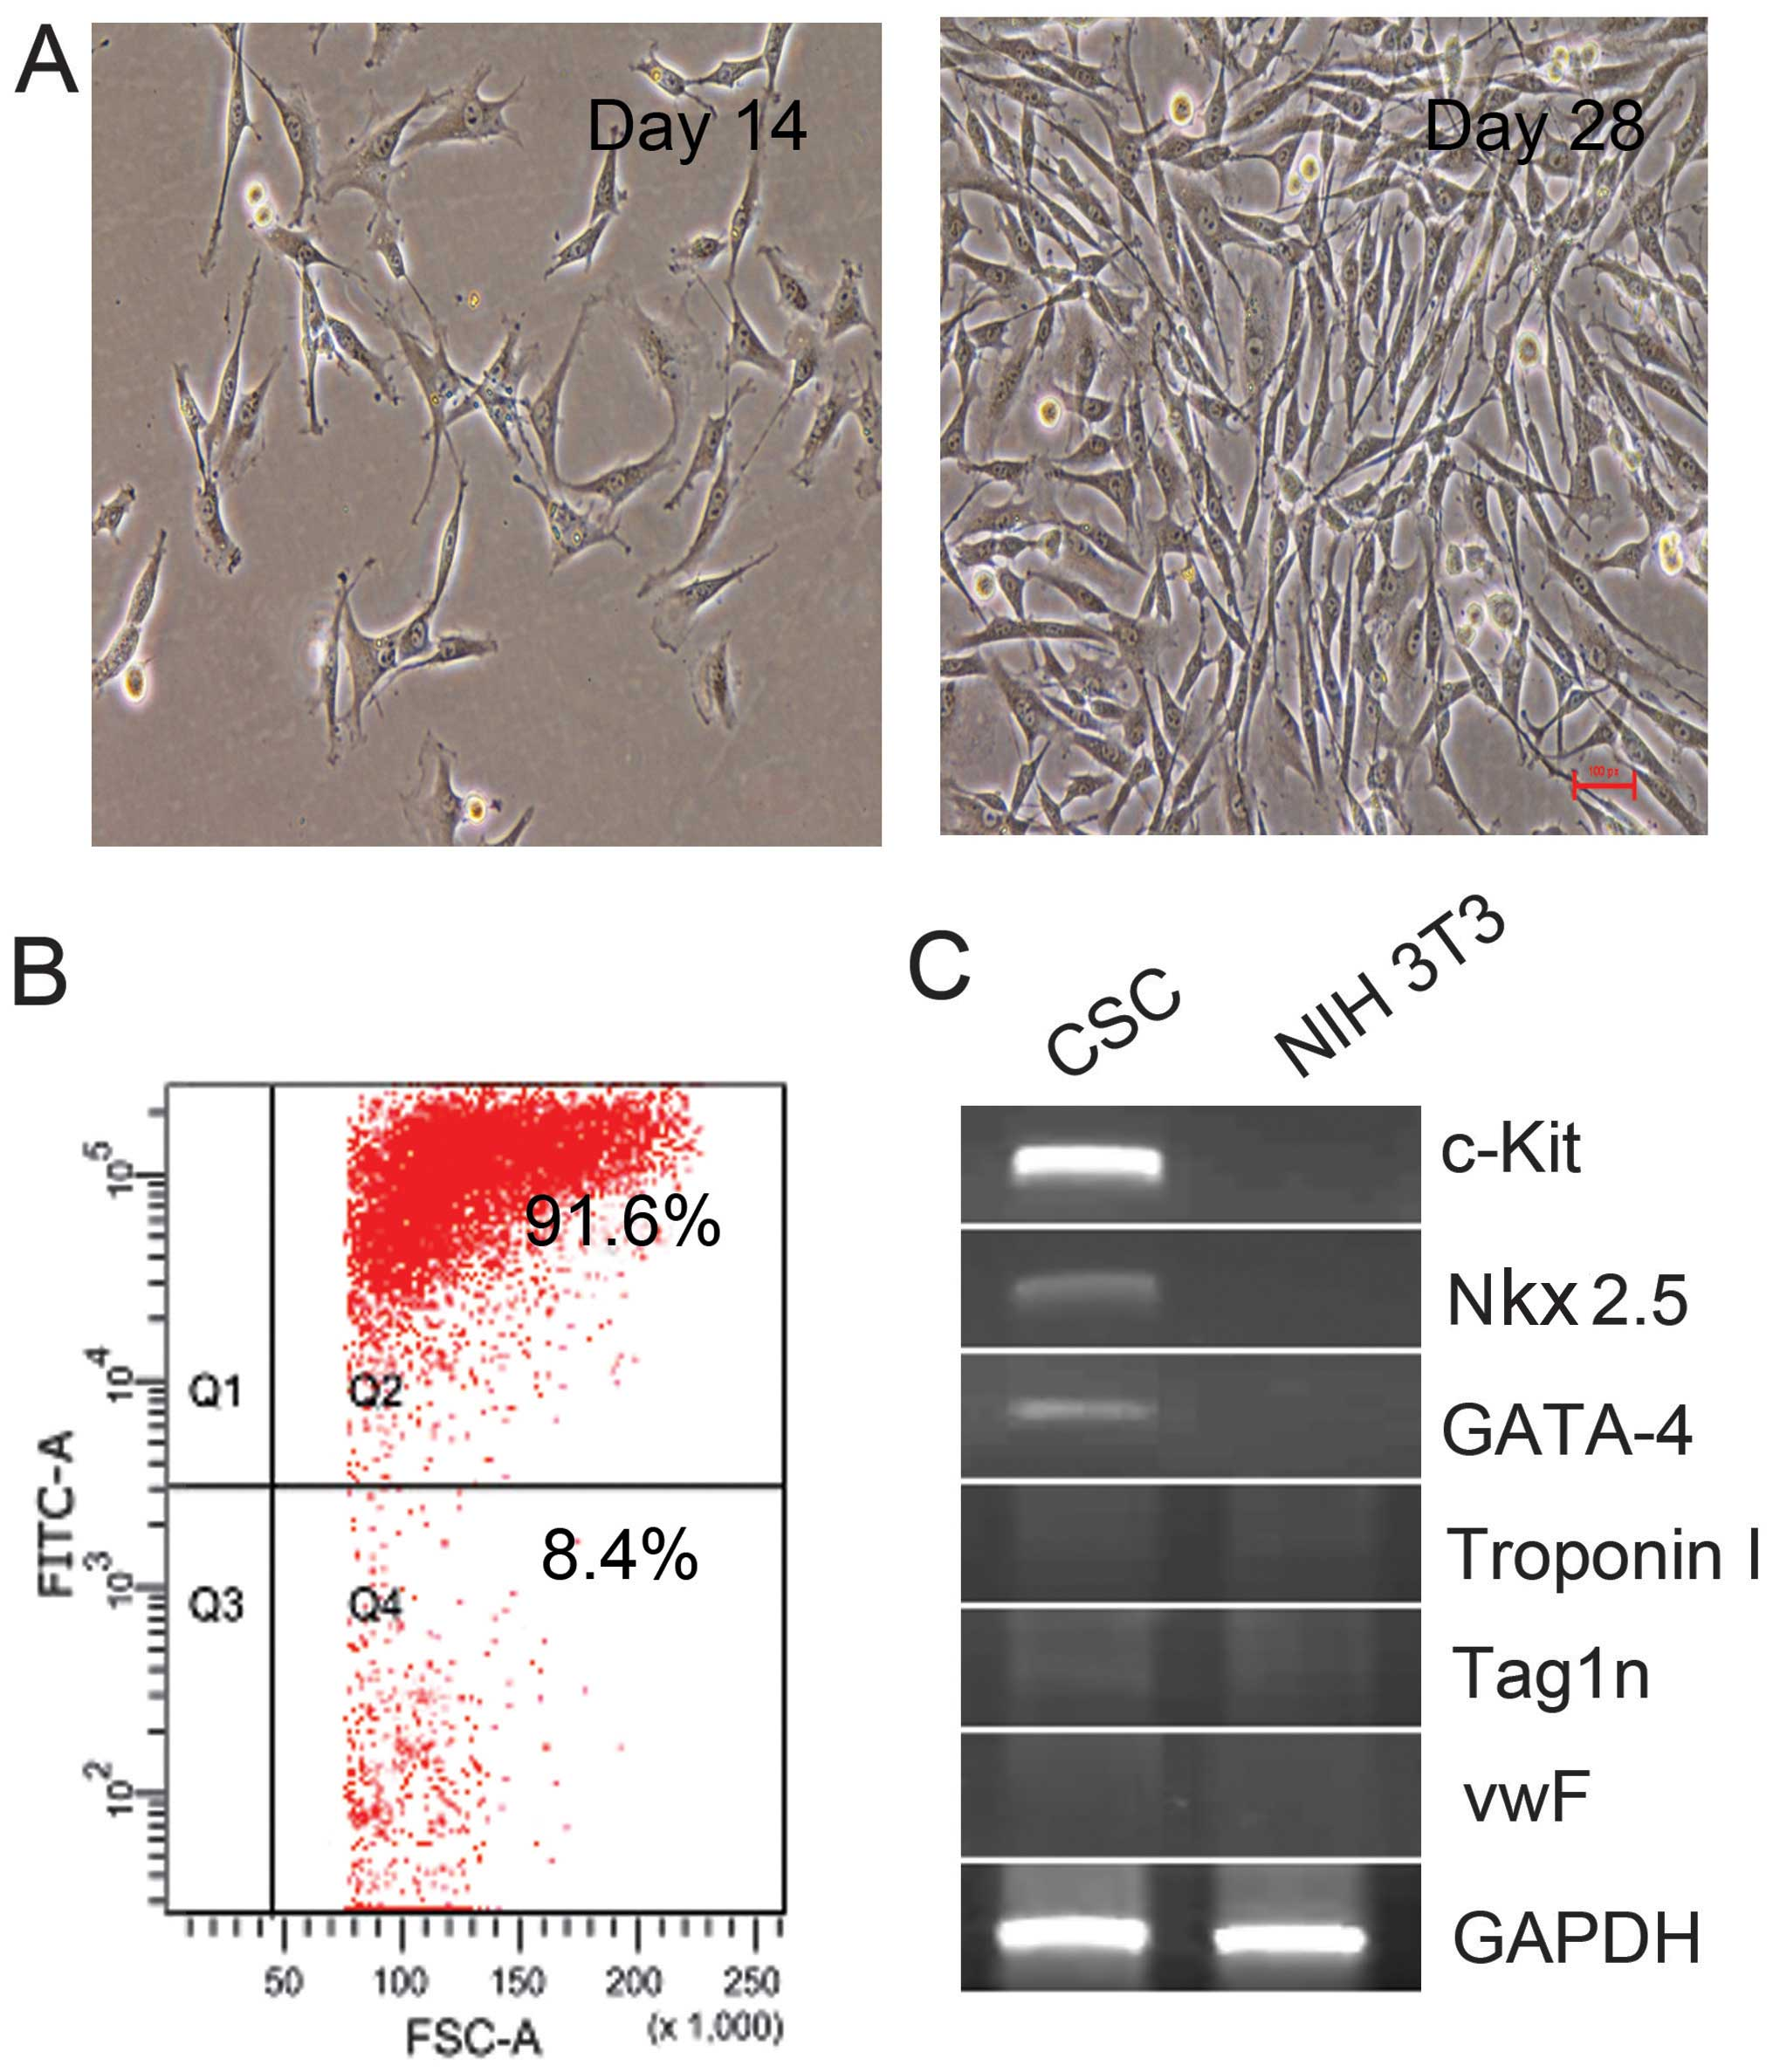 Scf Increases Cardiac Stem Cell Migration Through Pi3kakt And Mmp2